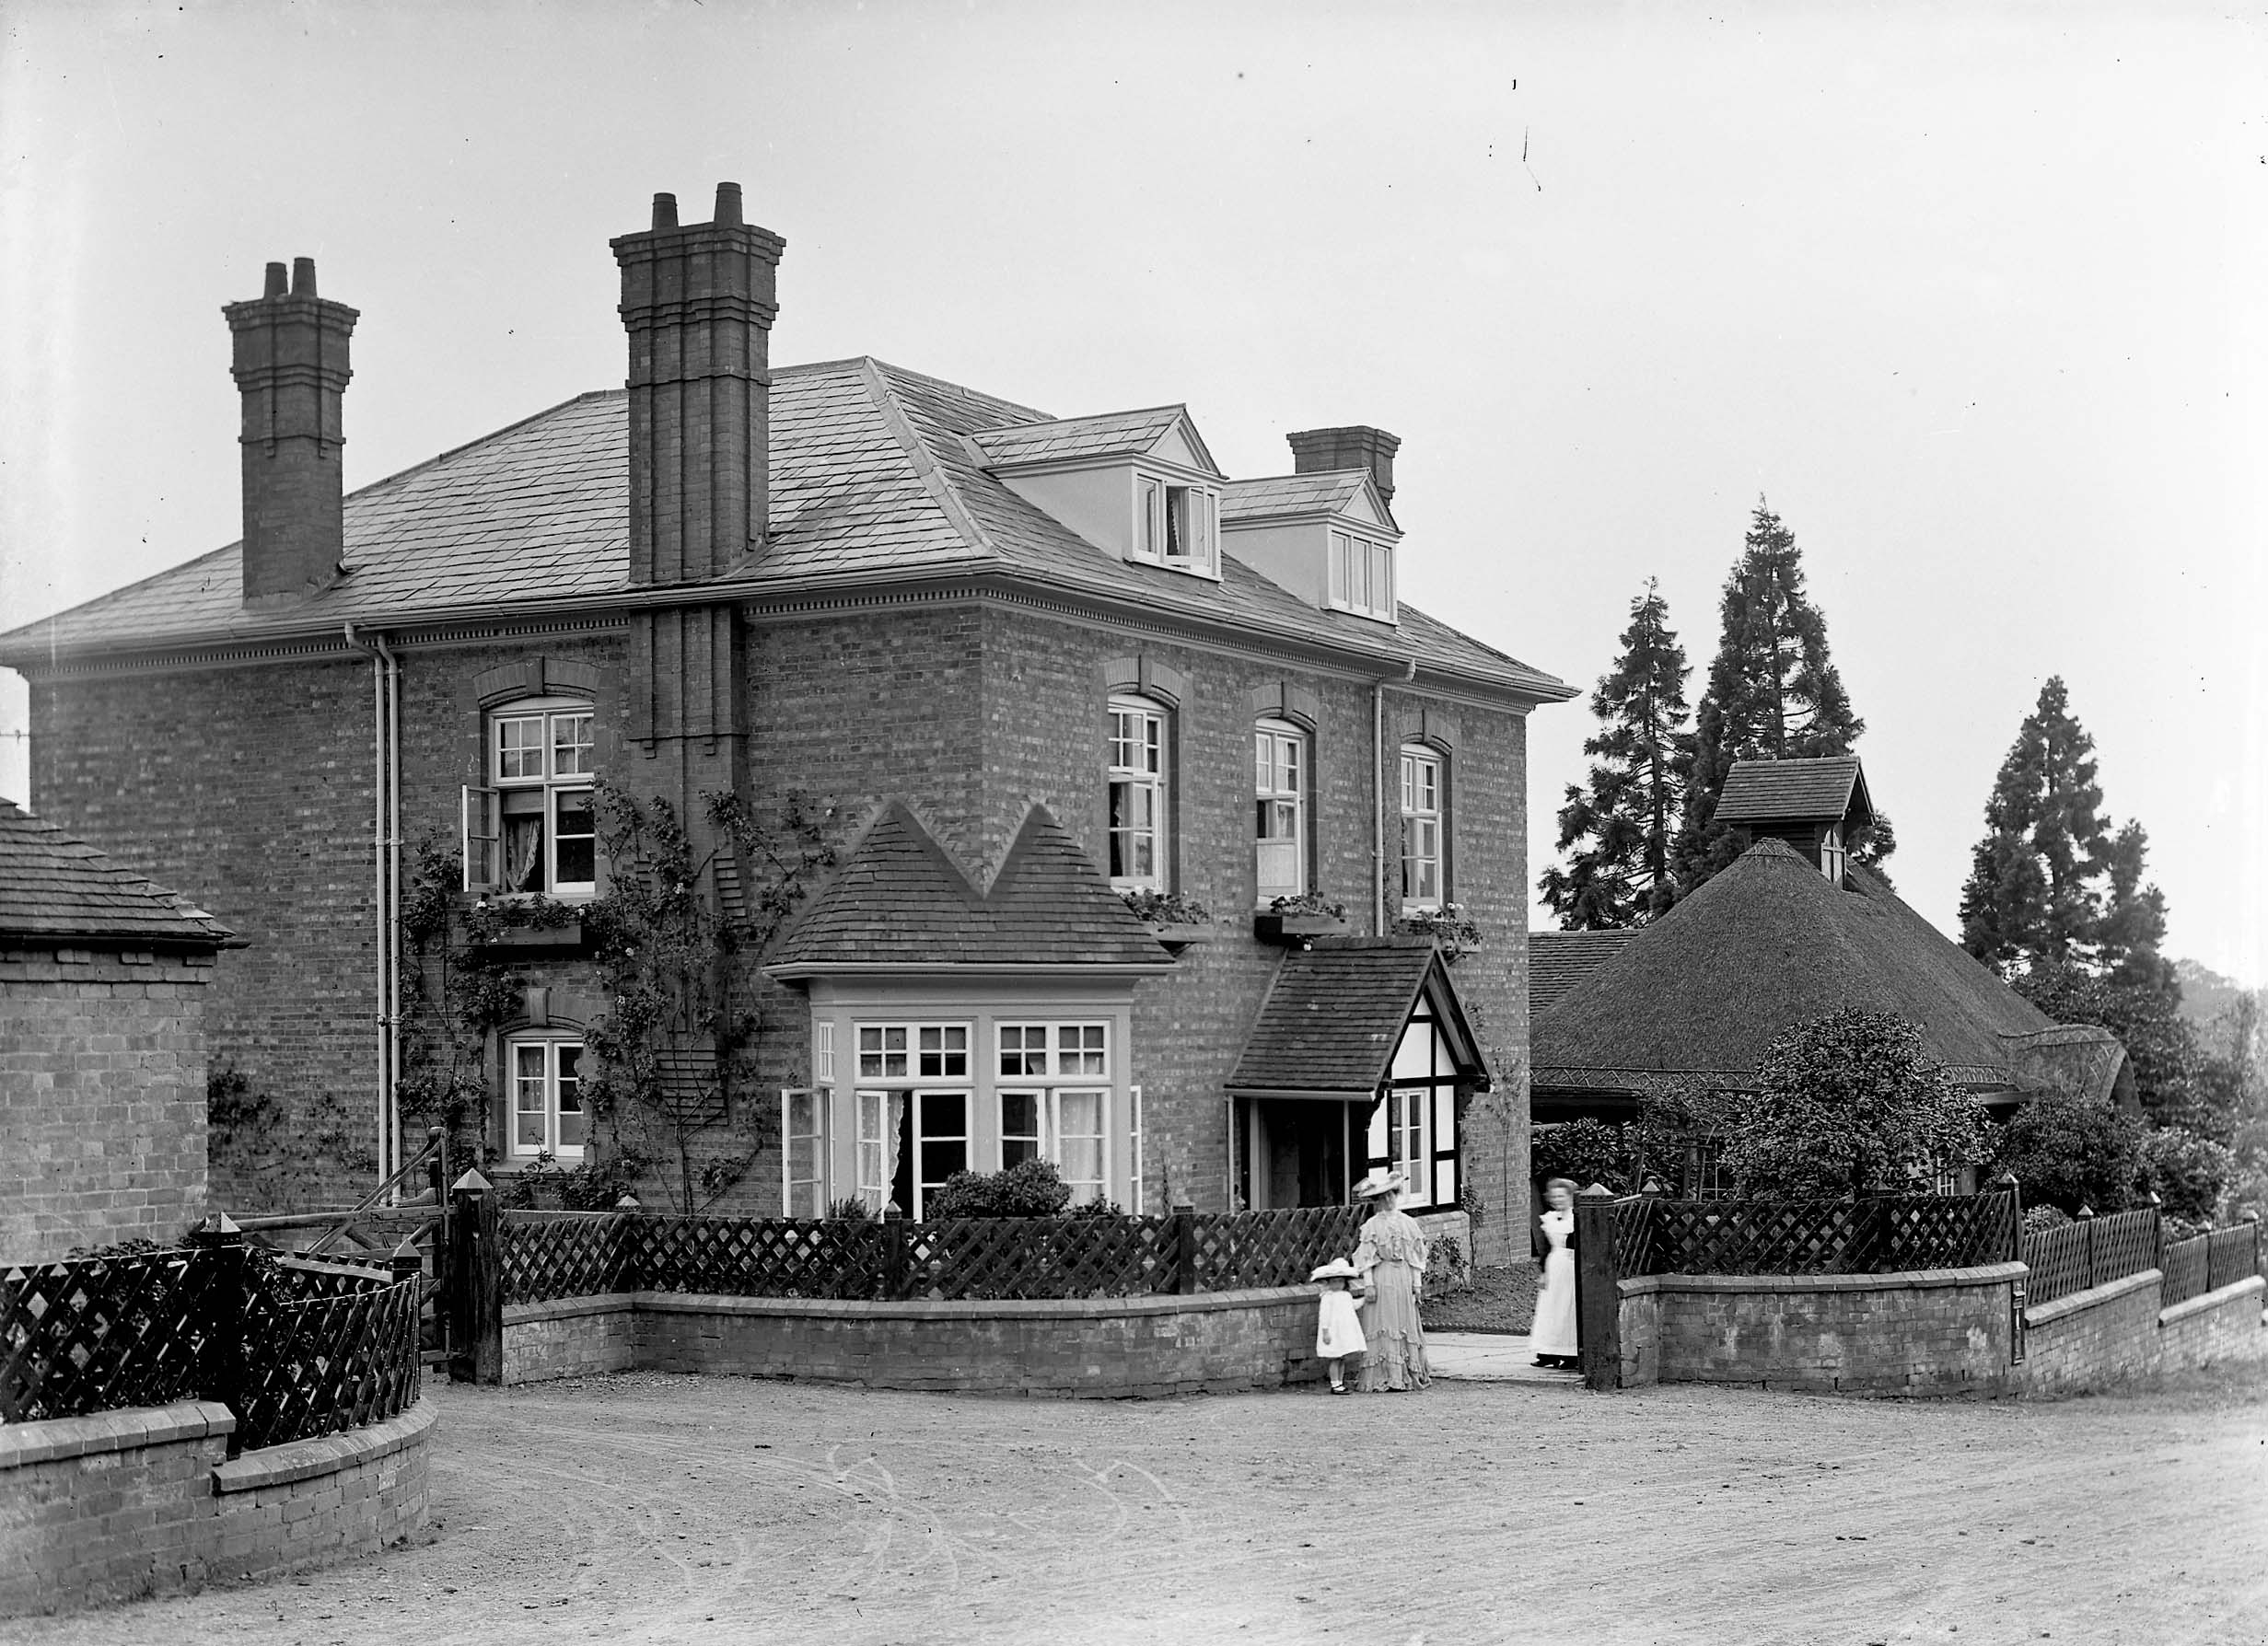 old black and white image of Hindlip Rectory